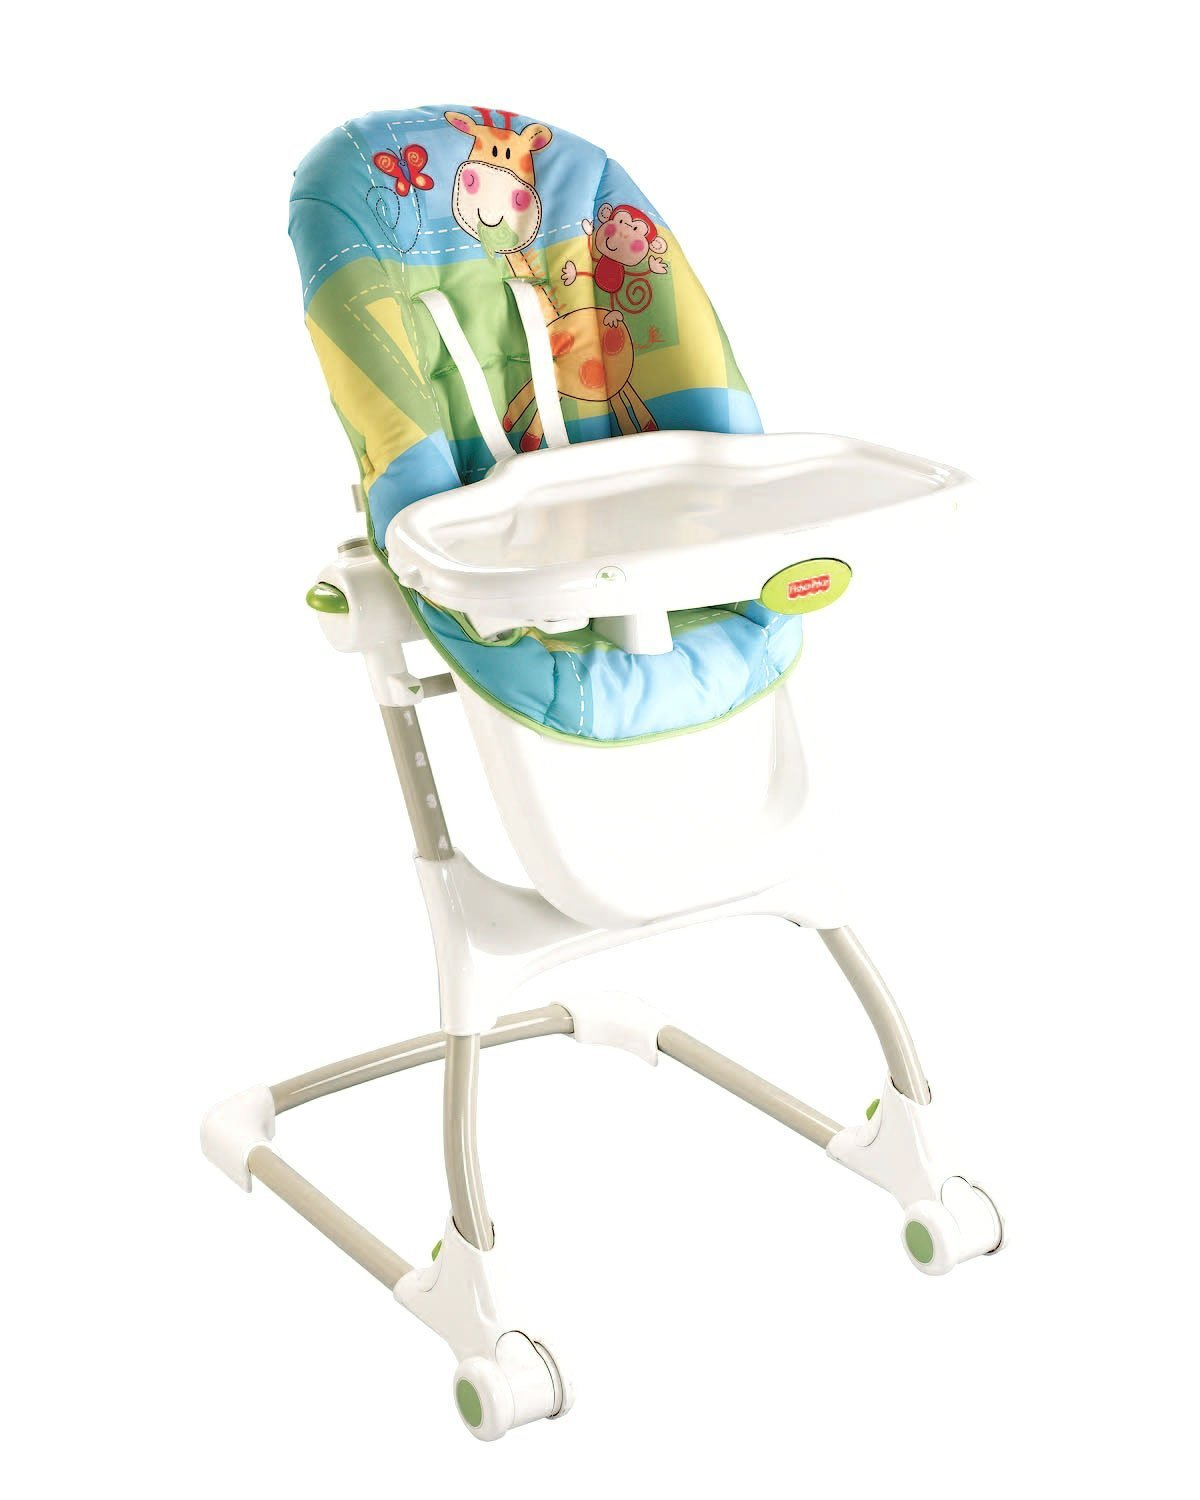 Chair fisher price high chair ez clean - Fisher Price Discover N Grow Ez Clean High Chair Only 59 98 Lowest Price